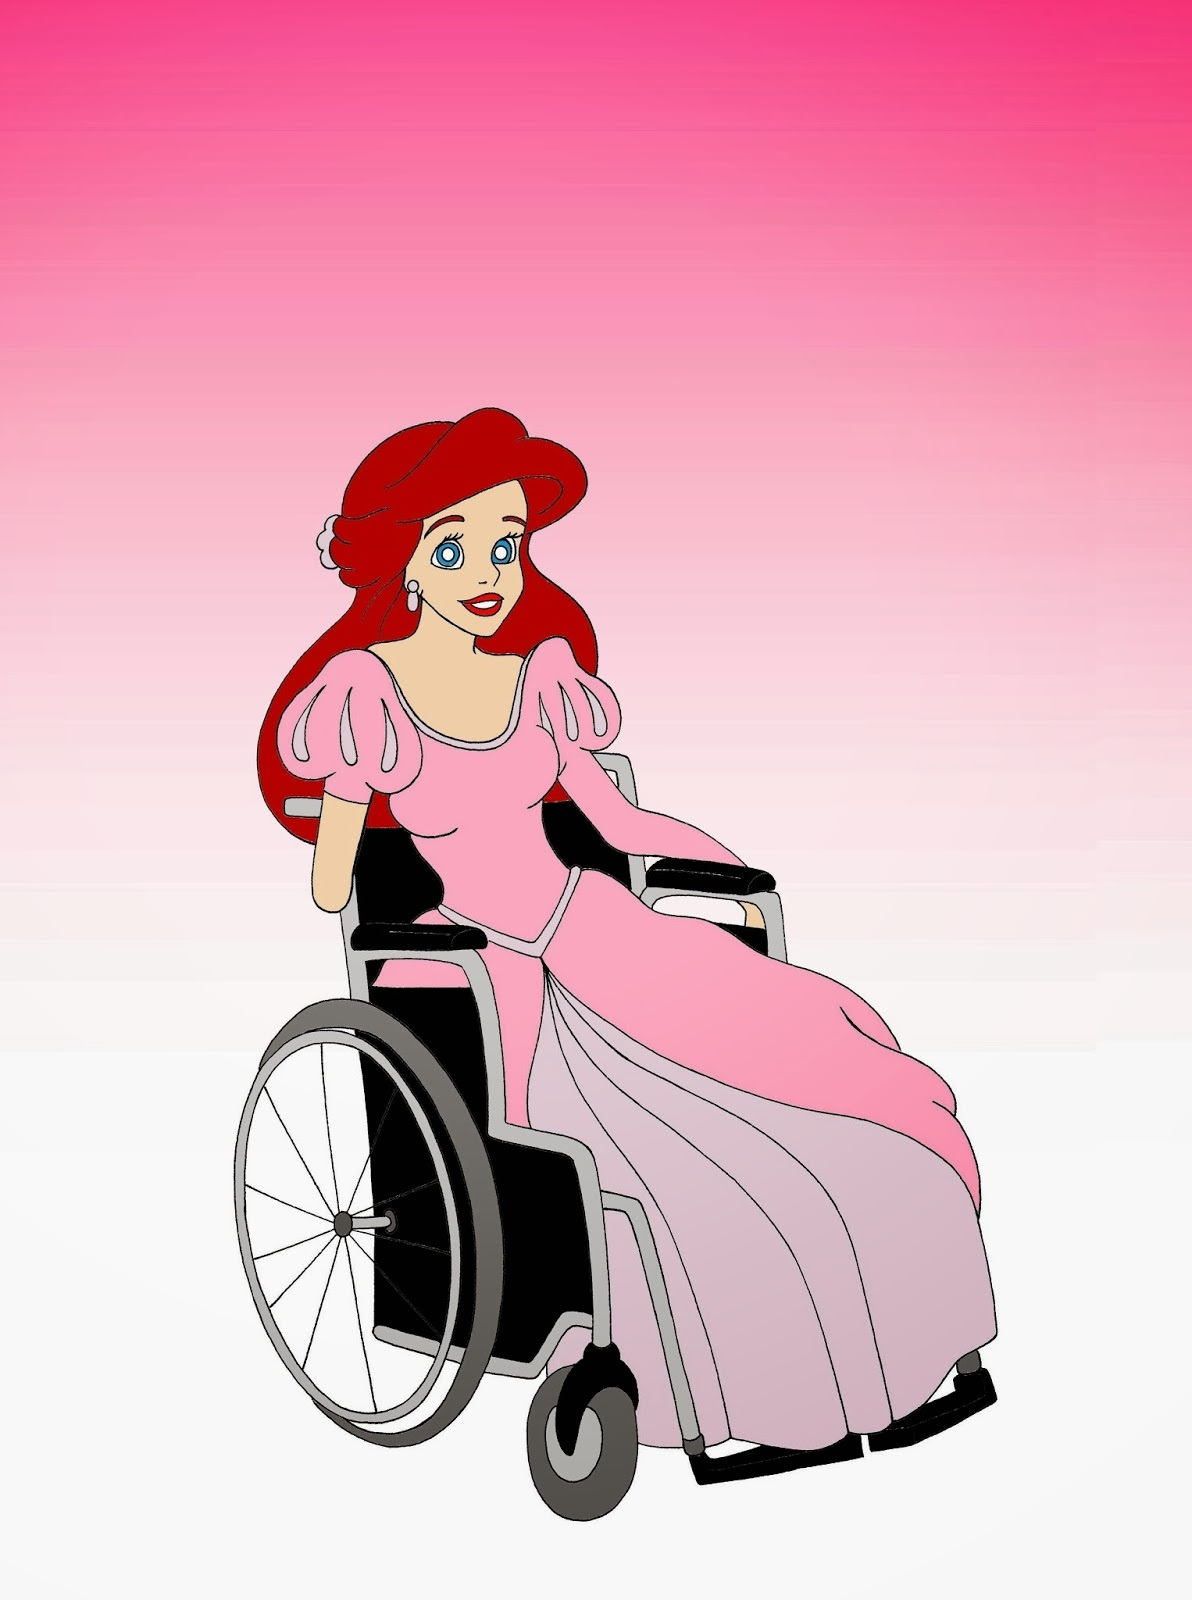 Disabled Disney Princess Ariel The Little Marmaid Disabled Disability Equal Rights Wellchair Health Art Campaign ADV Cartoon Painting Portrait Illustration Sketch Humor Chic by aleXsandro Palombo